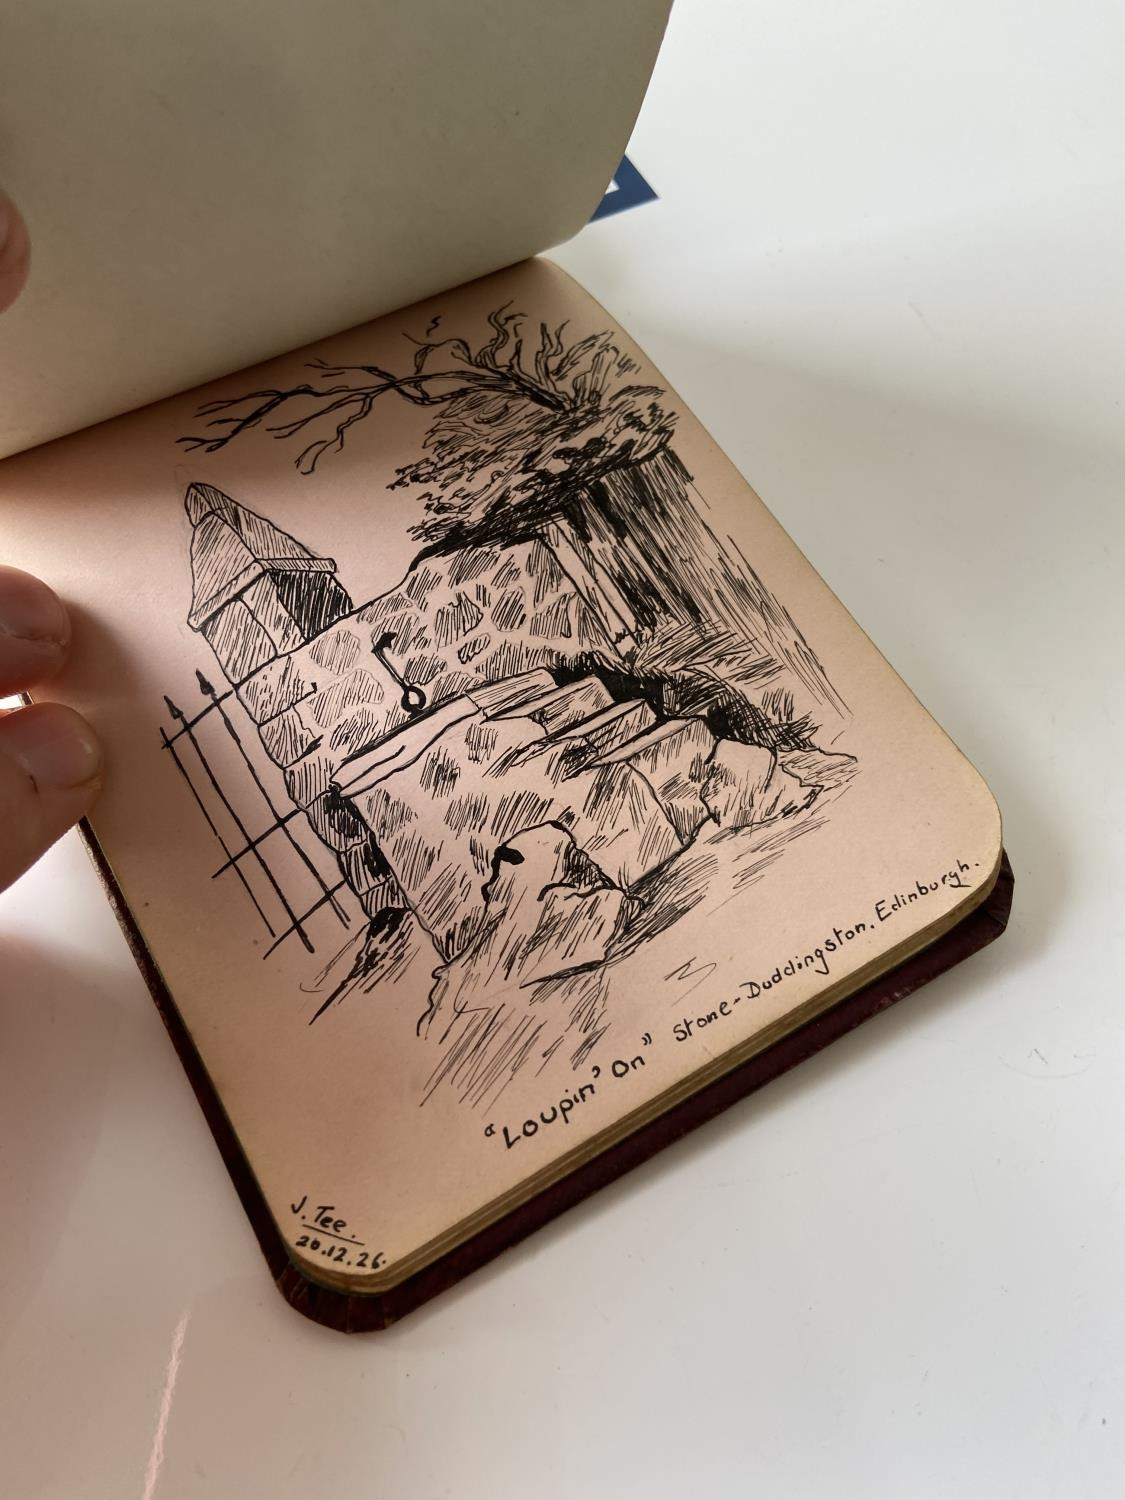 An old autograph album containing various poems, sayings & doodles - Image 17 of 18